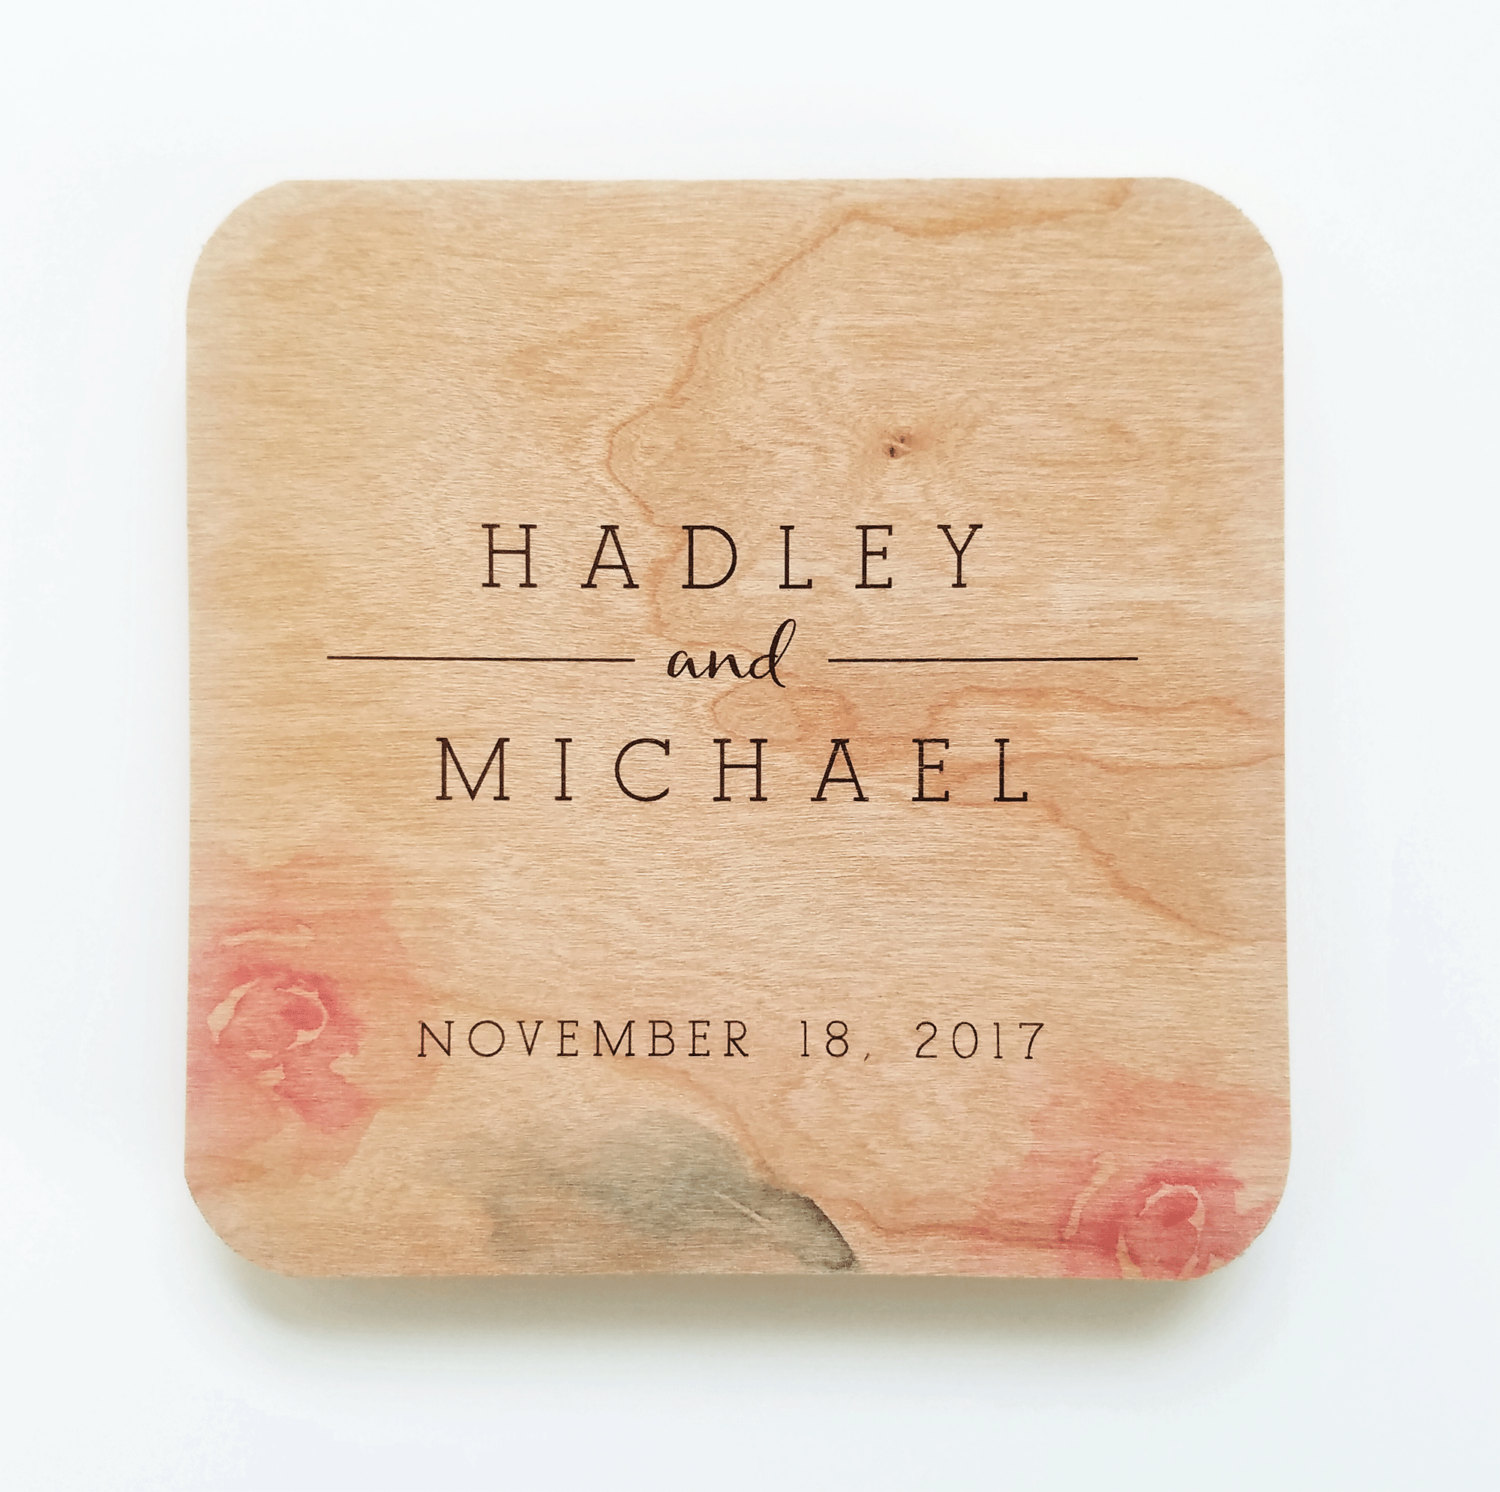 rose watercolor wedding invitations, coasters and more